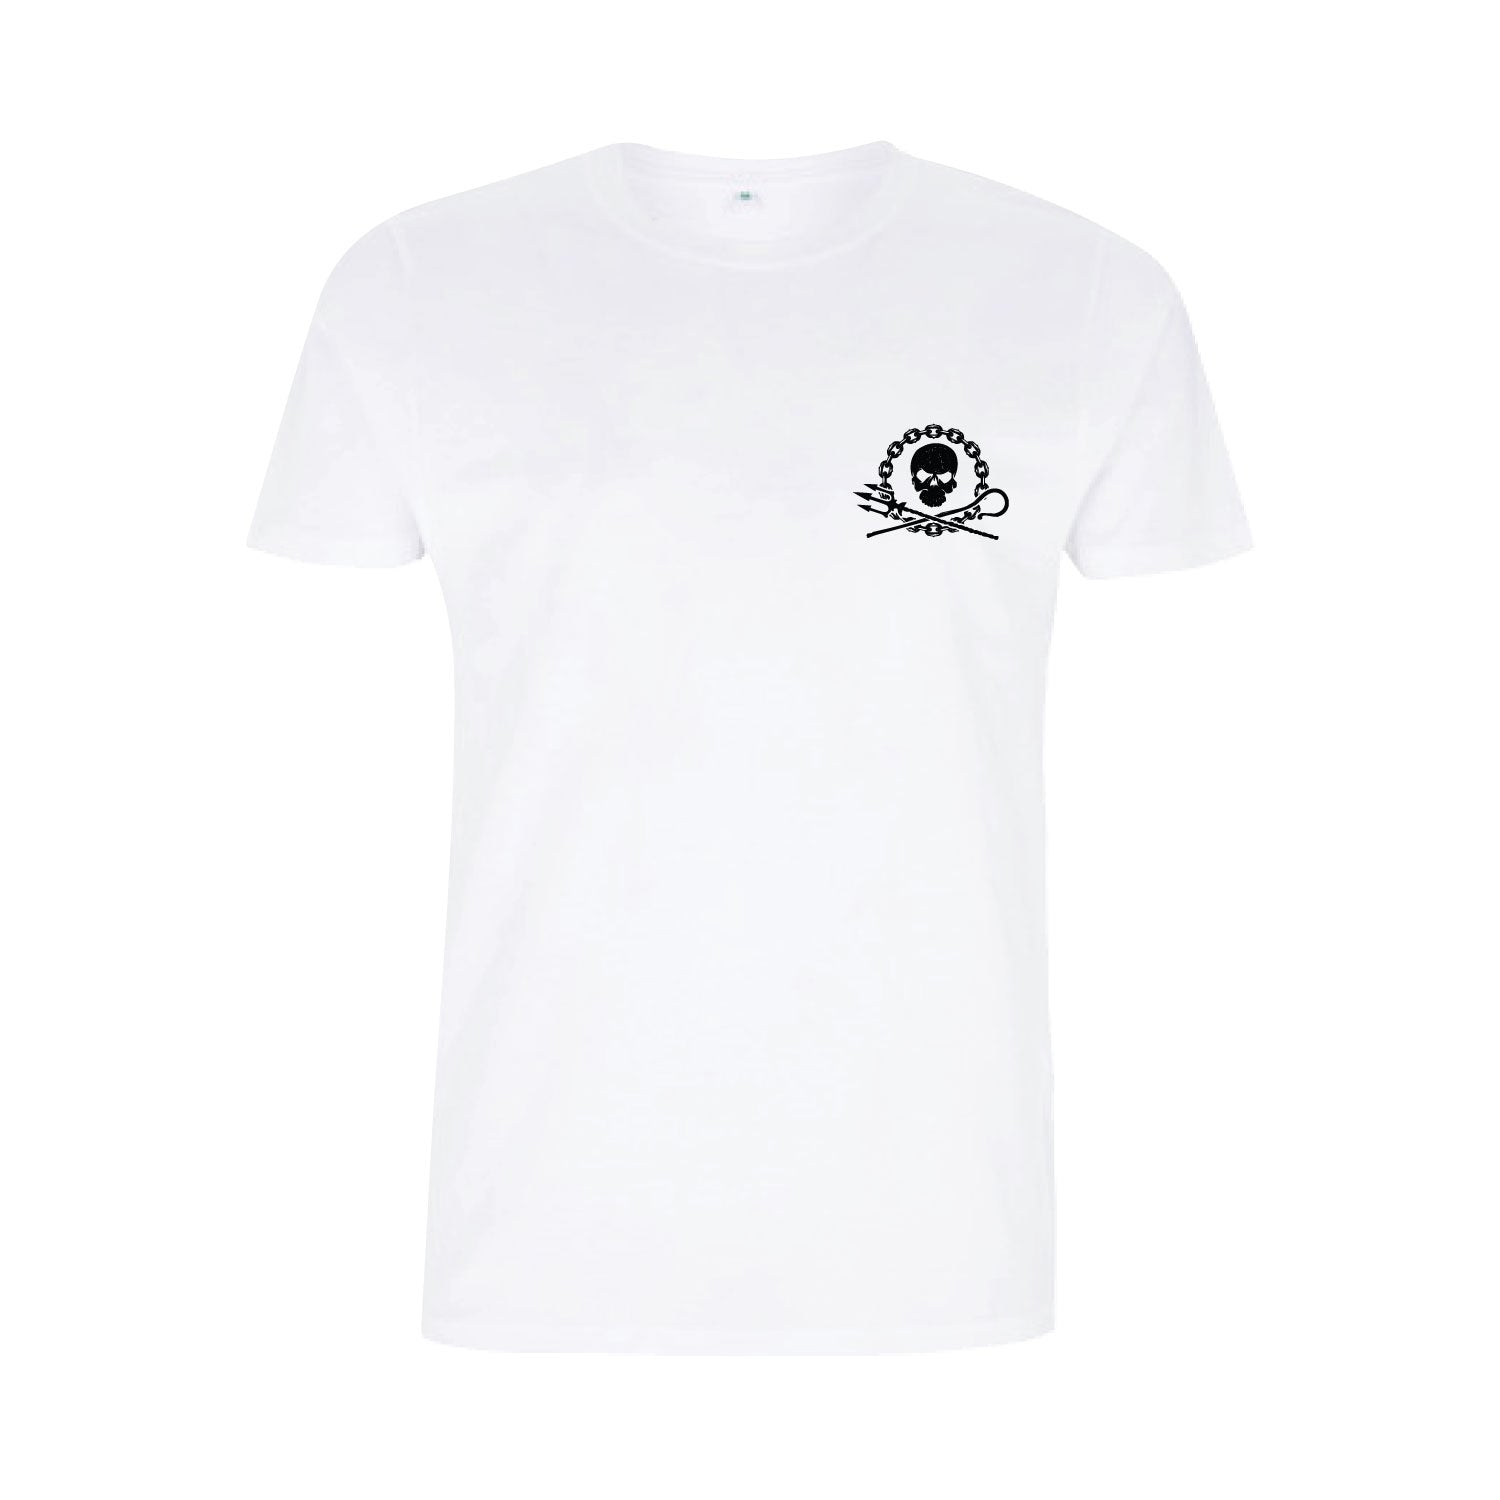 Stand Fast Circle of Strength Unisex Tee - White